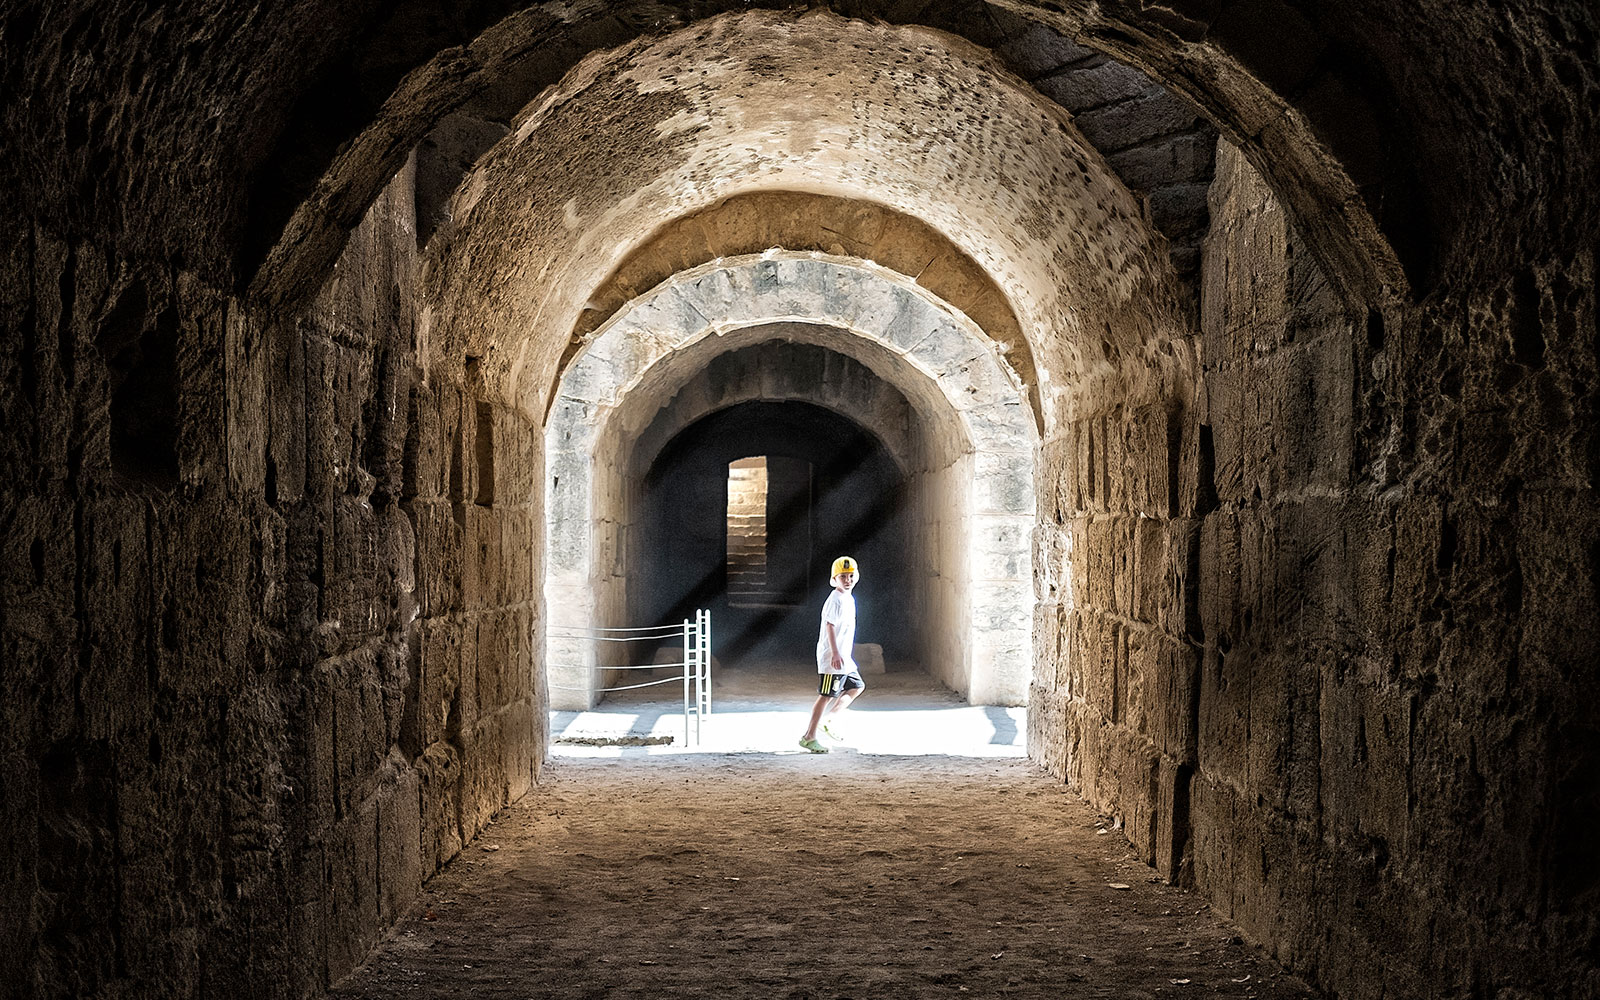 Tours Worth Taking: Underground and Third Ring Tour of the Colosseum in Rome